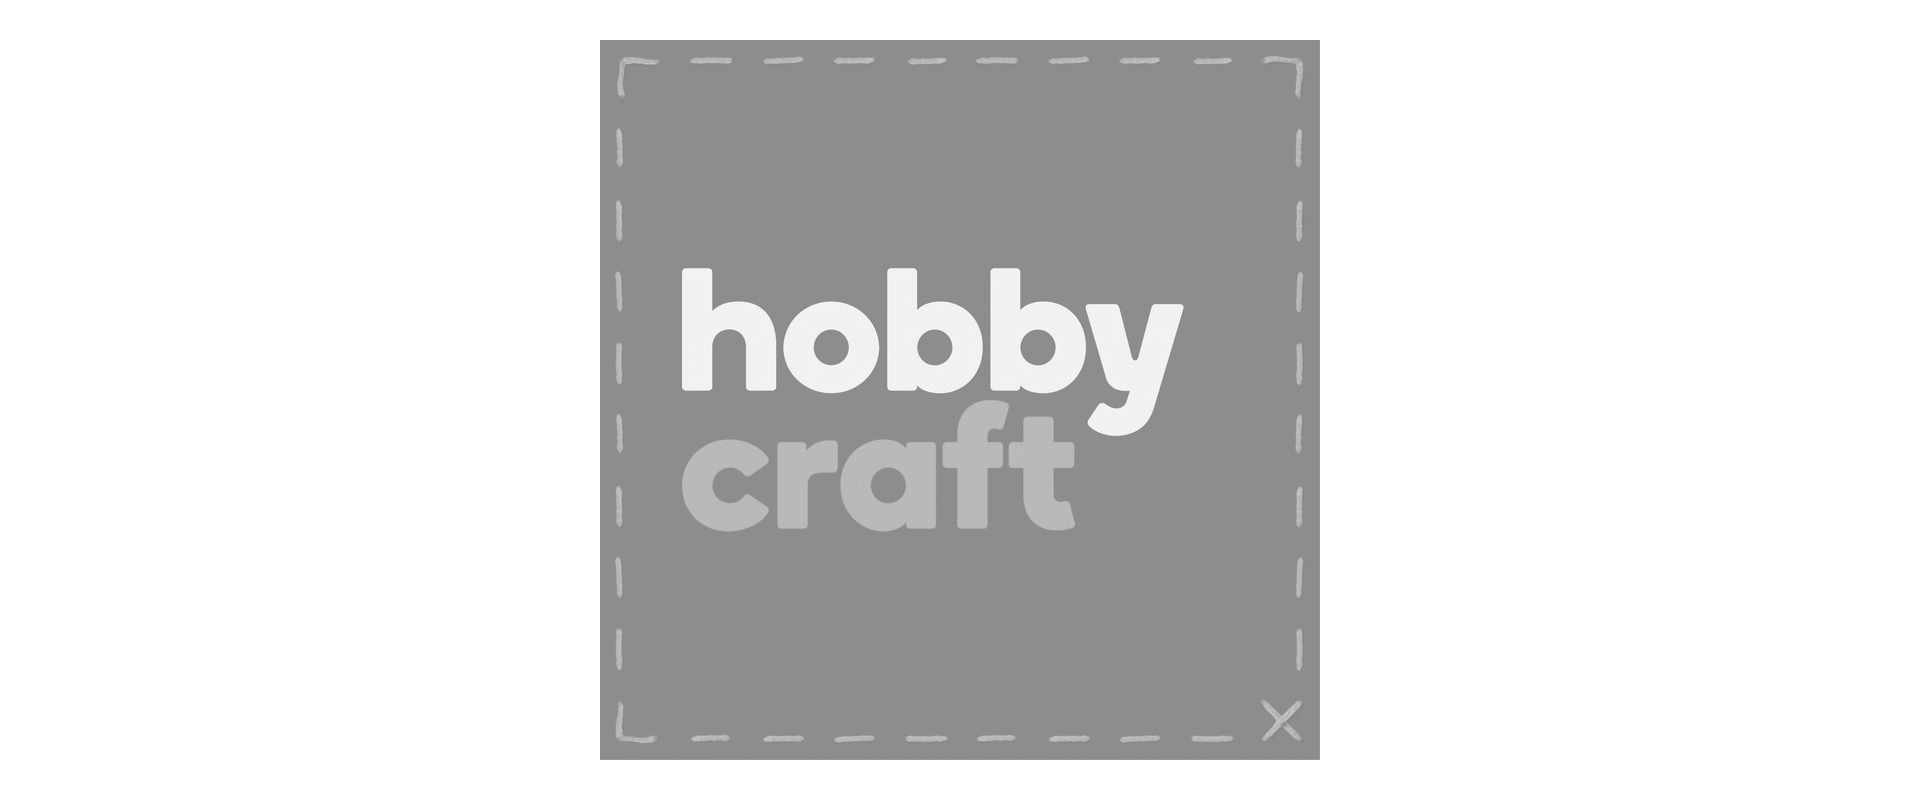 Studio 2 Media have produced for Hobbycraft